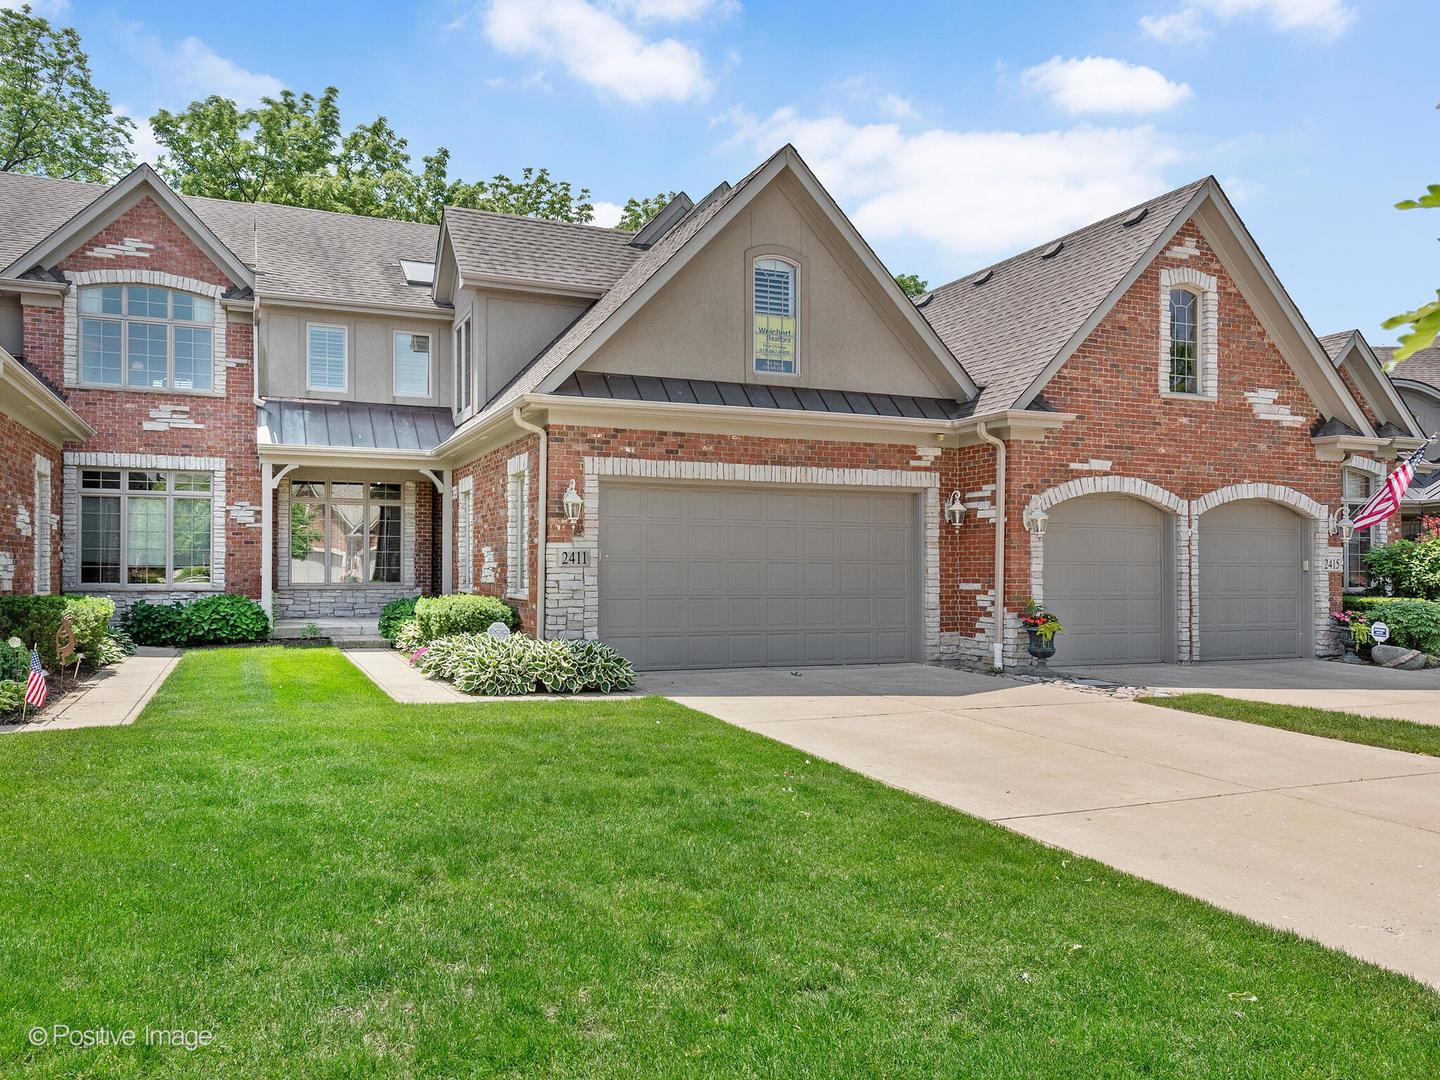 2411 Durand Drive, Downers Grove, IL 60516 - #: 11140291